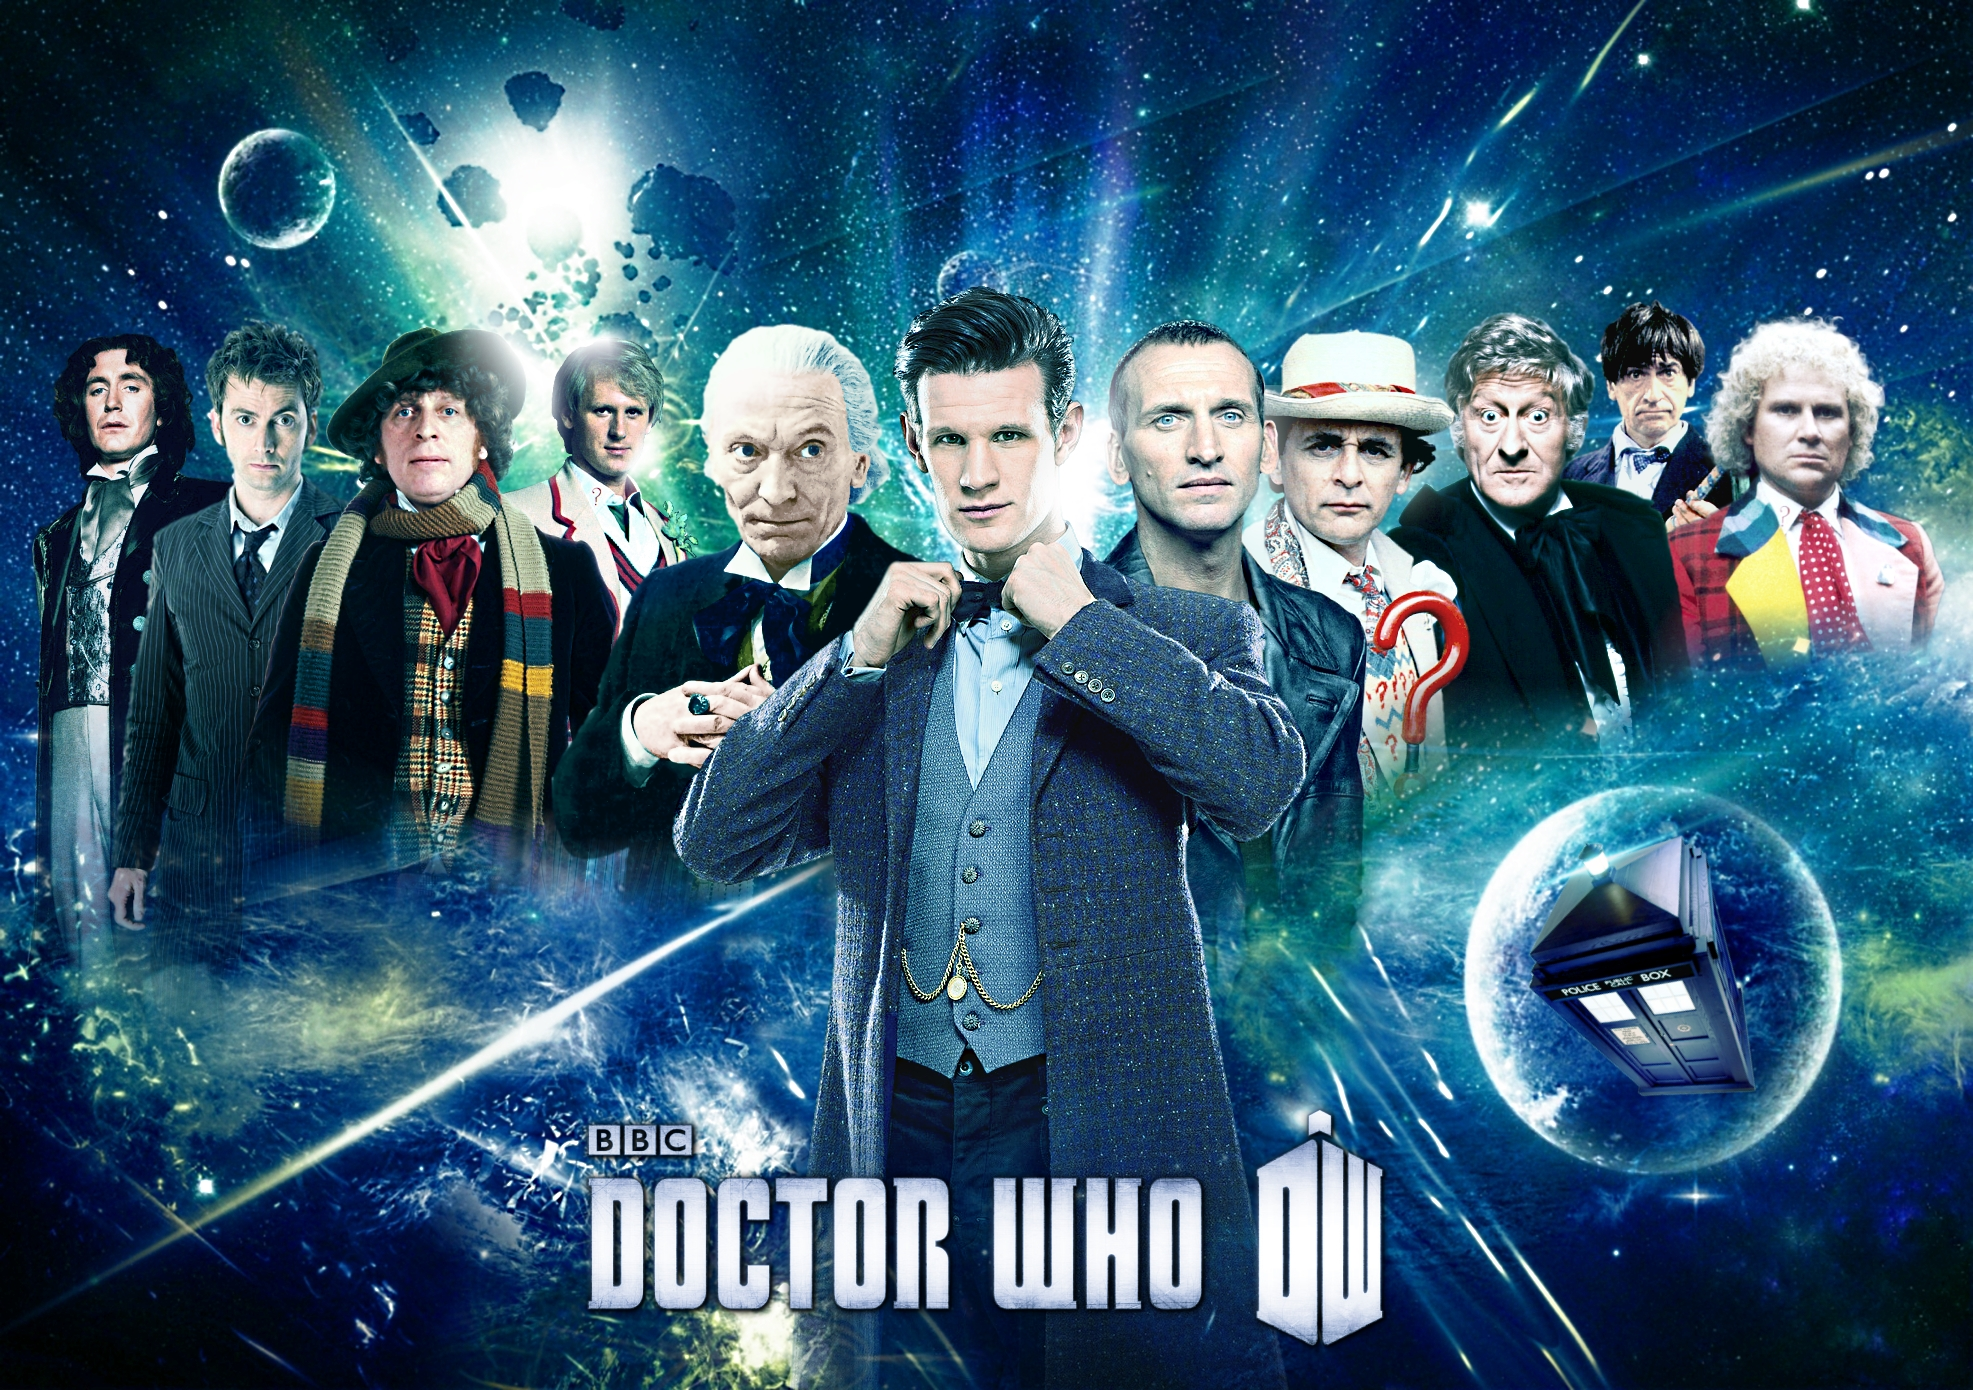 Doctor Who   Eleven Doctors poster by DisneyDoctorWhoSly23 on 1973x1390